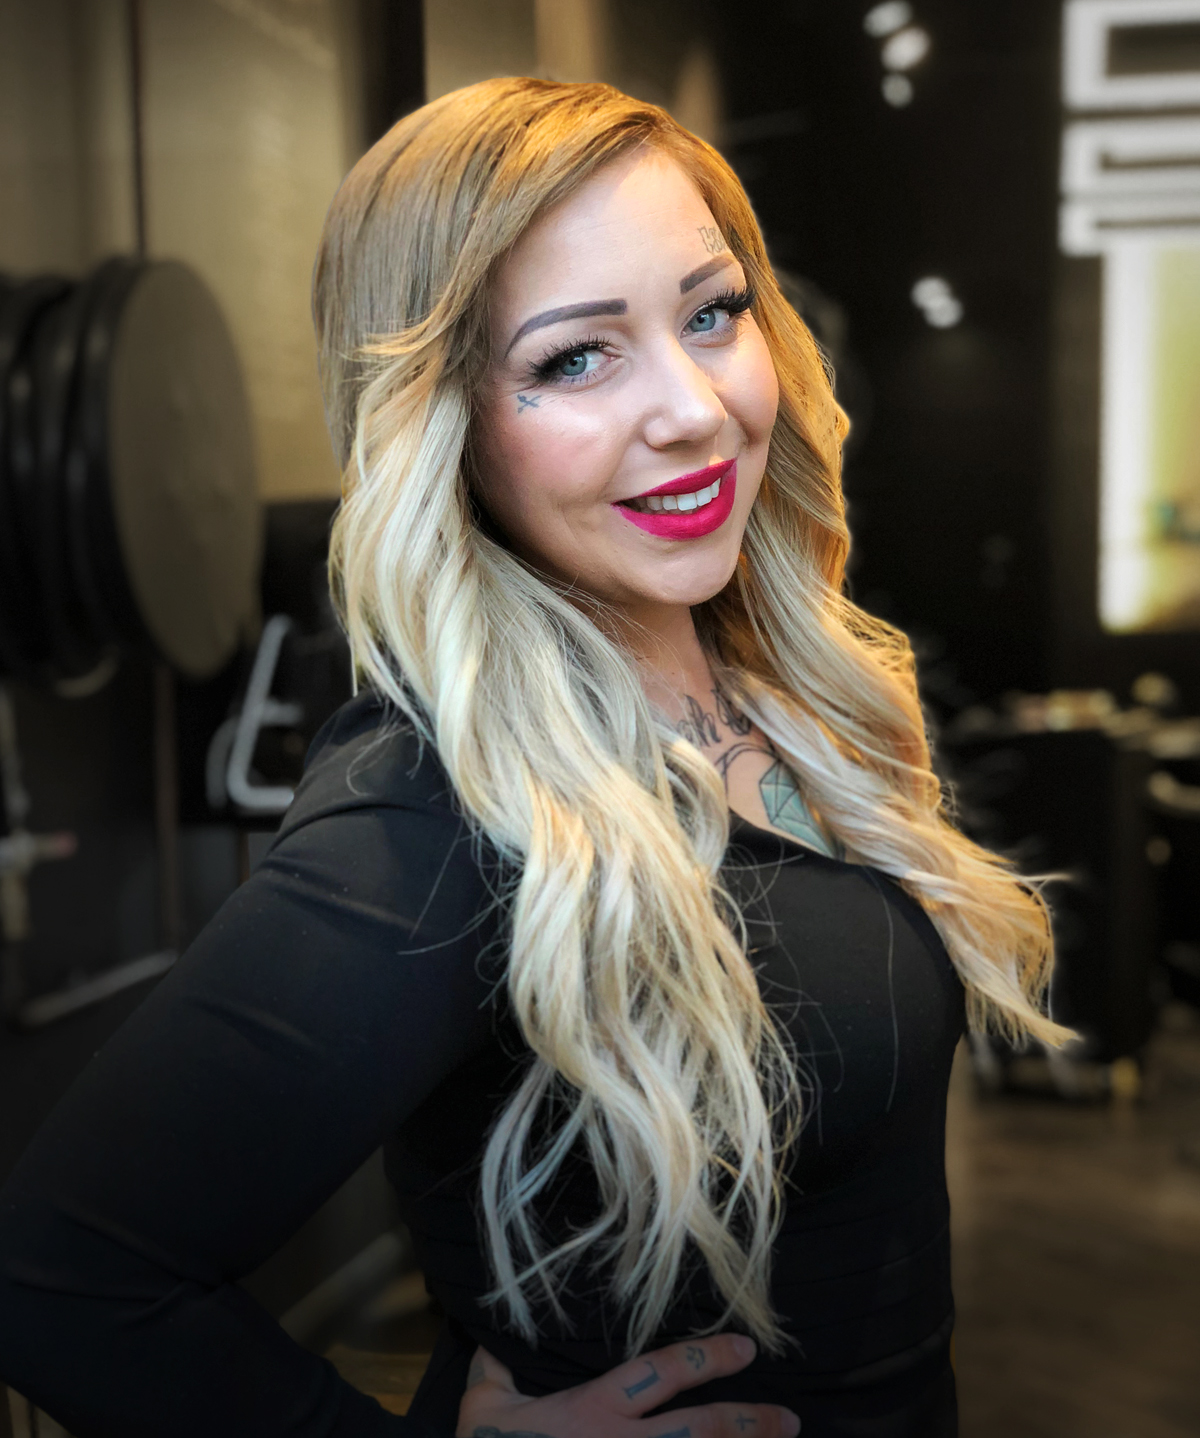 shannon, MASTER COLOURIST  Shannon's passion lies her eye for detail, when it comes to colours she knows it all. She can bring out the colour you desire mixed in with what she sees fit for your face and skin tone. No need to stress when your in her care.